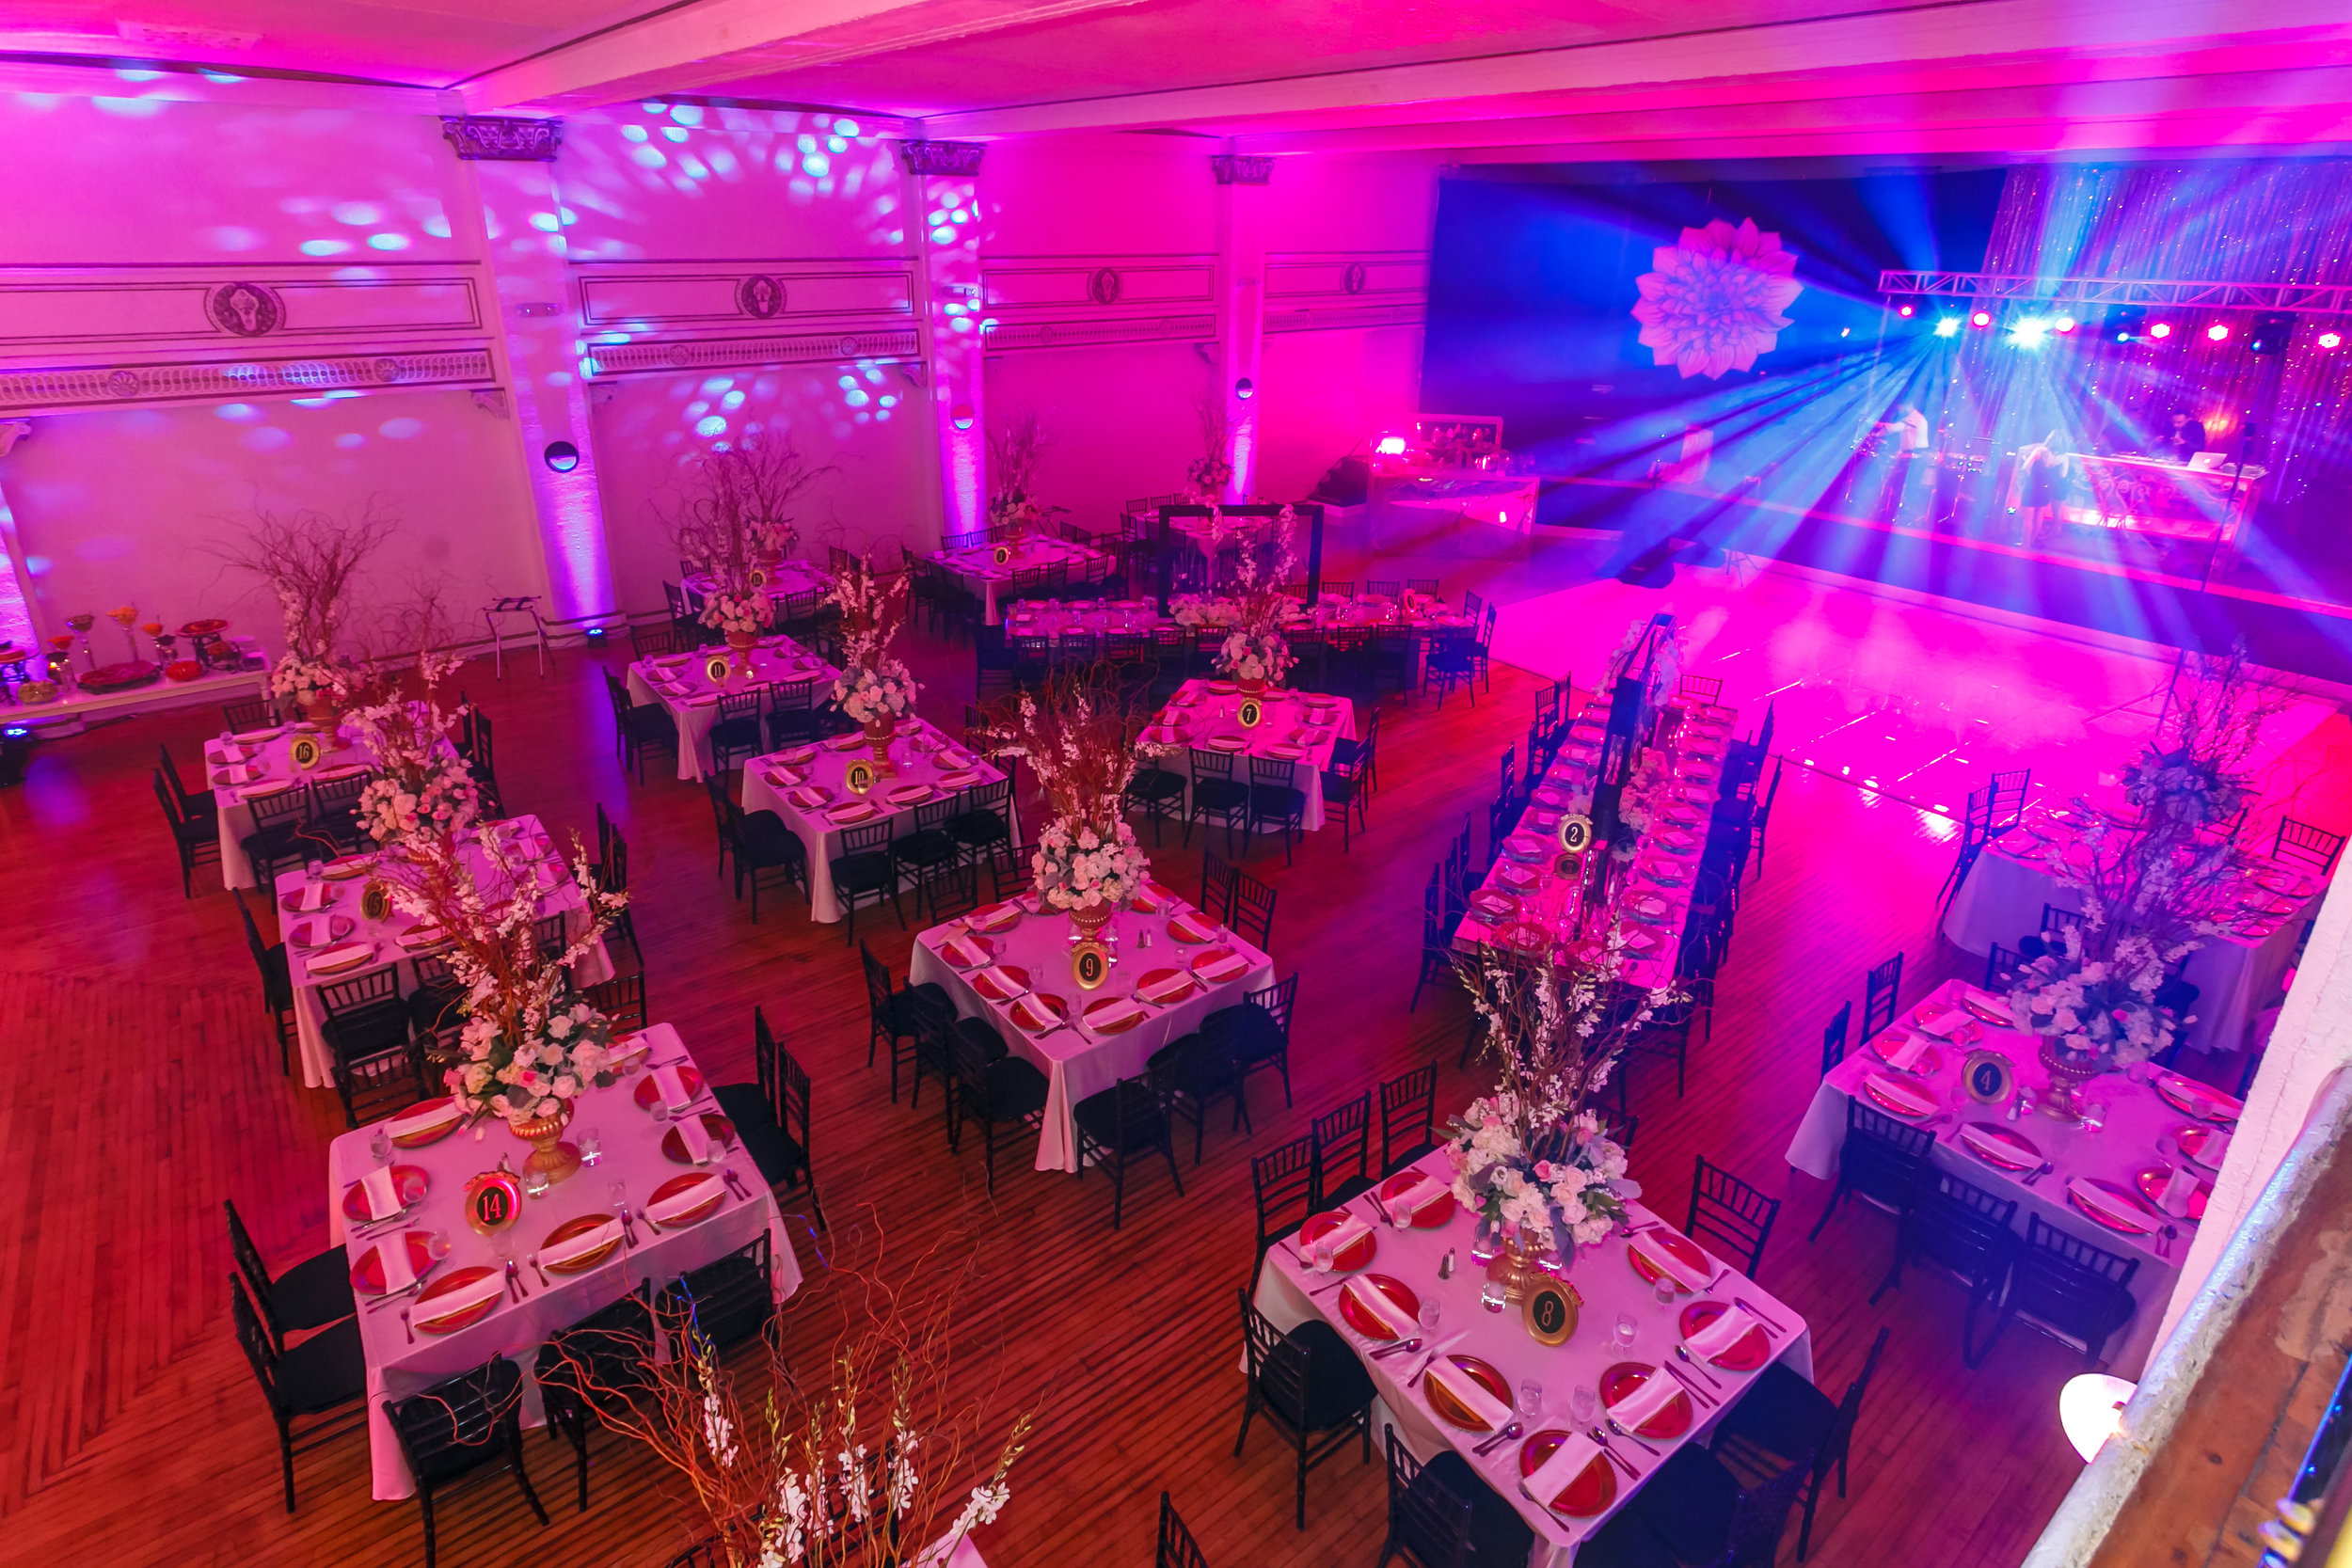 CHATEAU BALLROOM - 10,912 sq. ft. | Capacity: 450-800